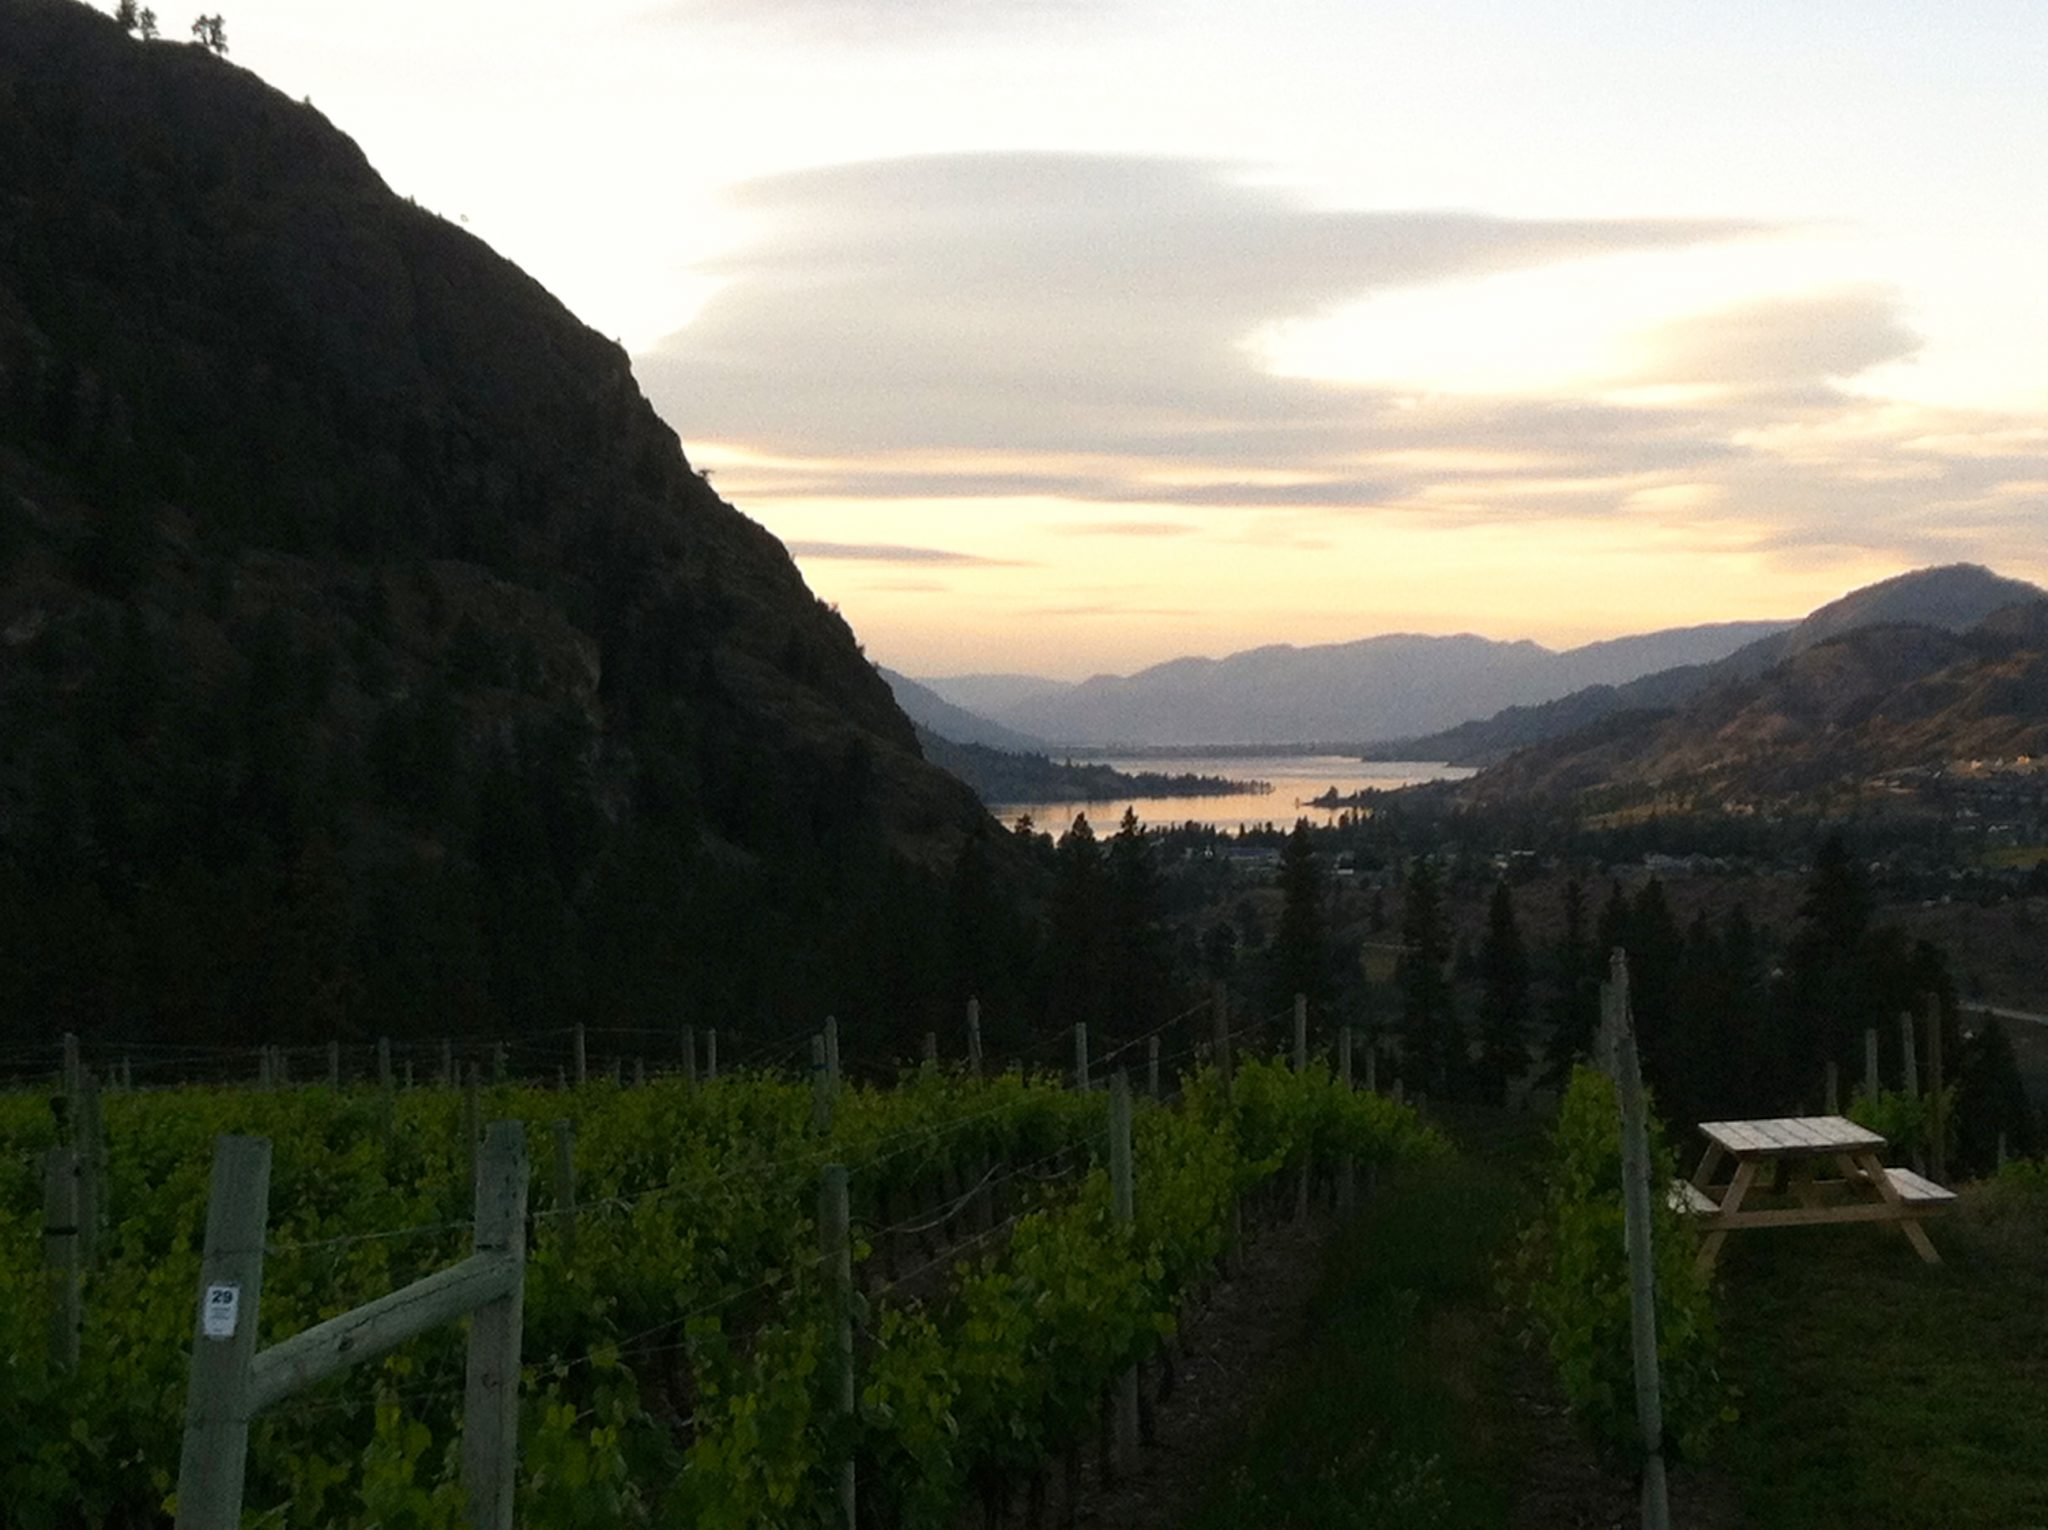 Vineyard in Penticton, BC